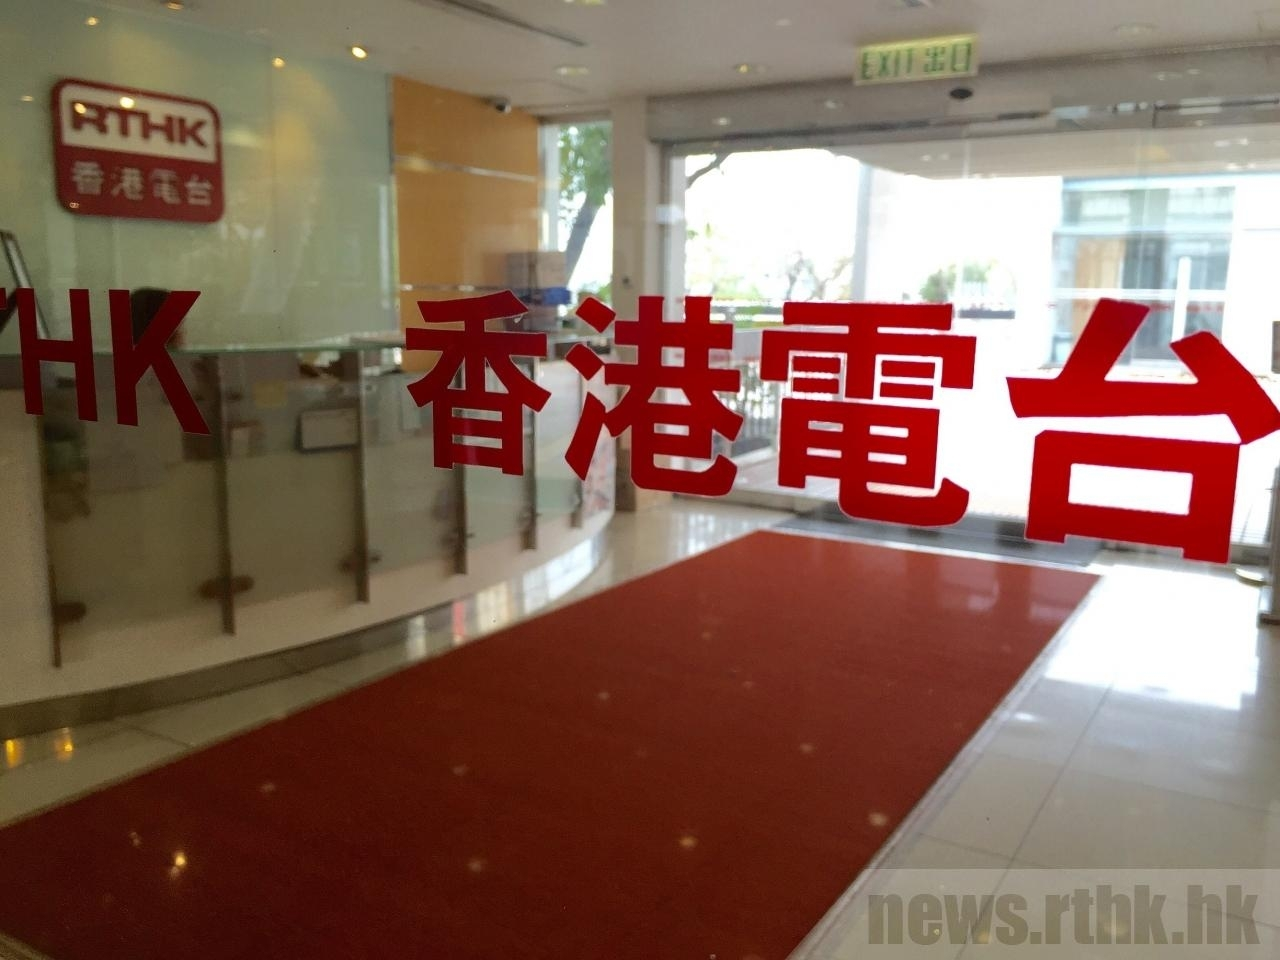 RTHK latest to receive mail containing white powder